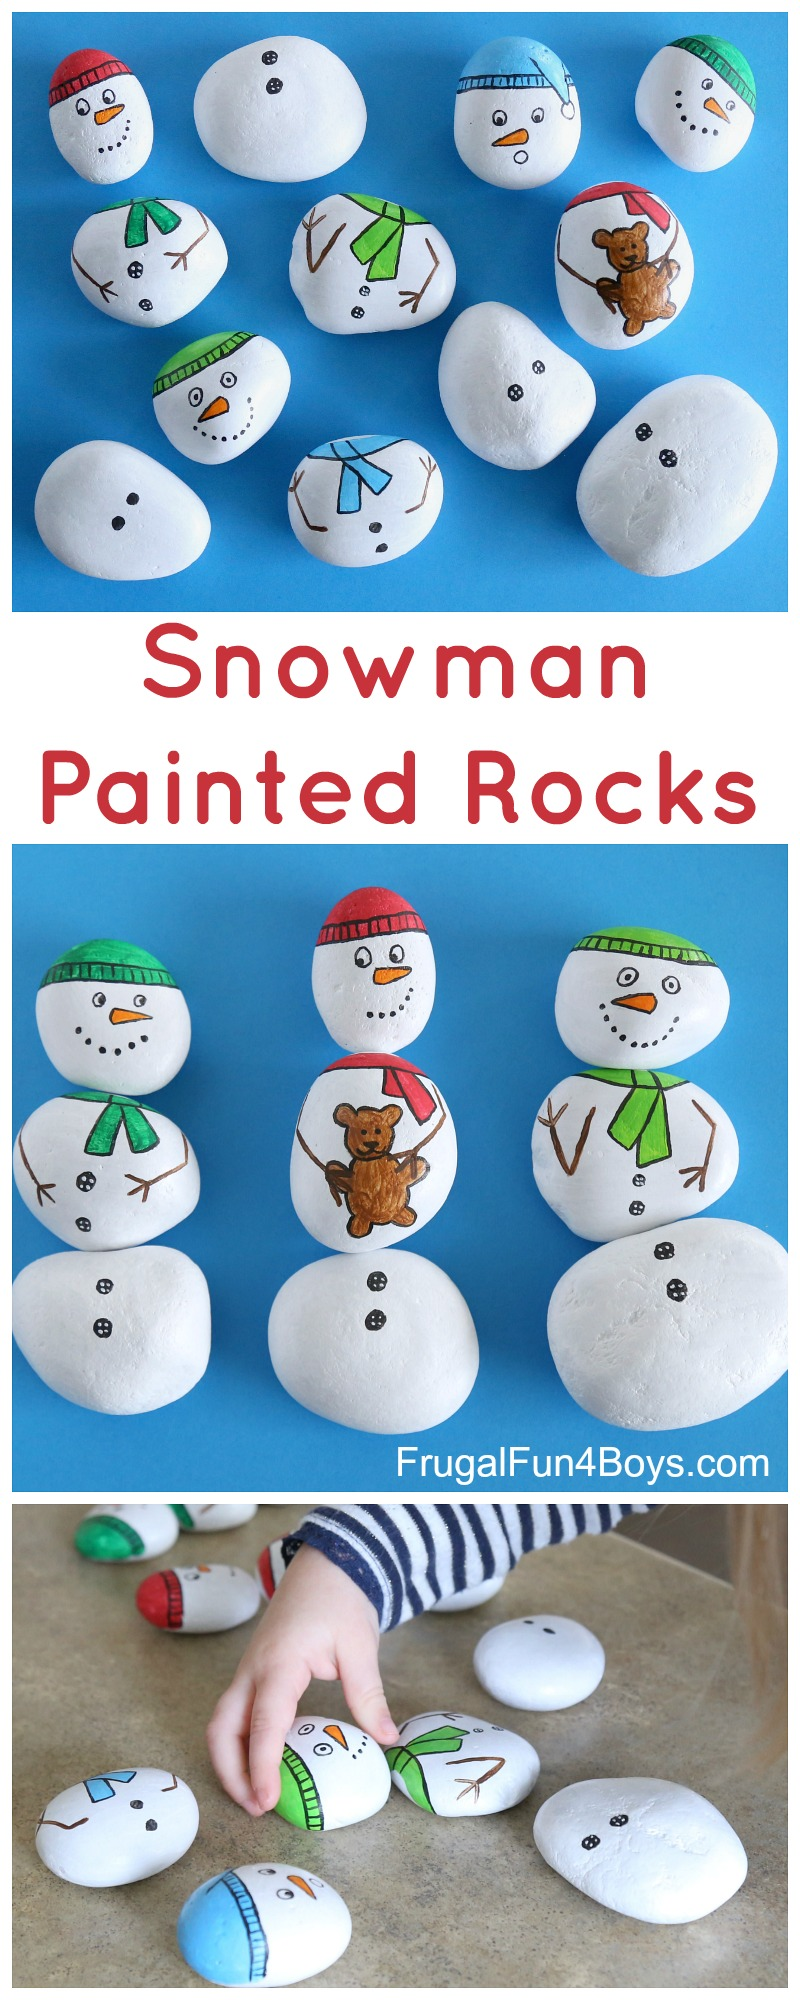 Snowman Painted Rocks Build A Snowman Frugal Fun For Boys And Girls